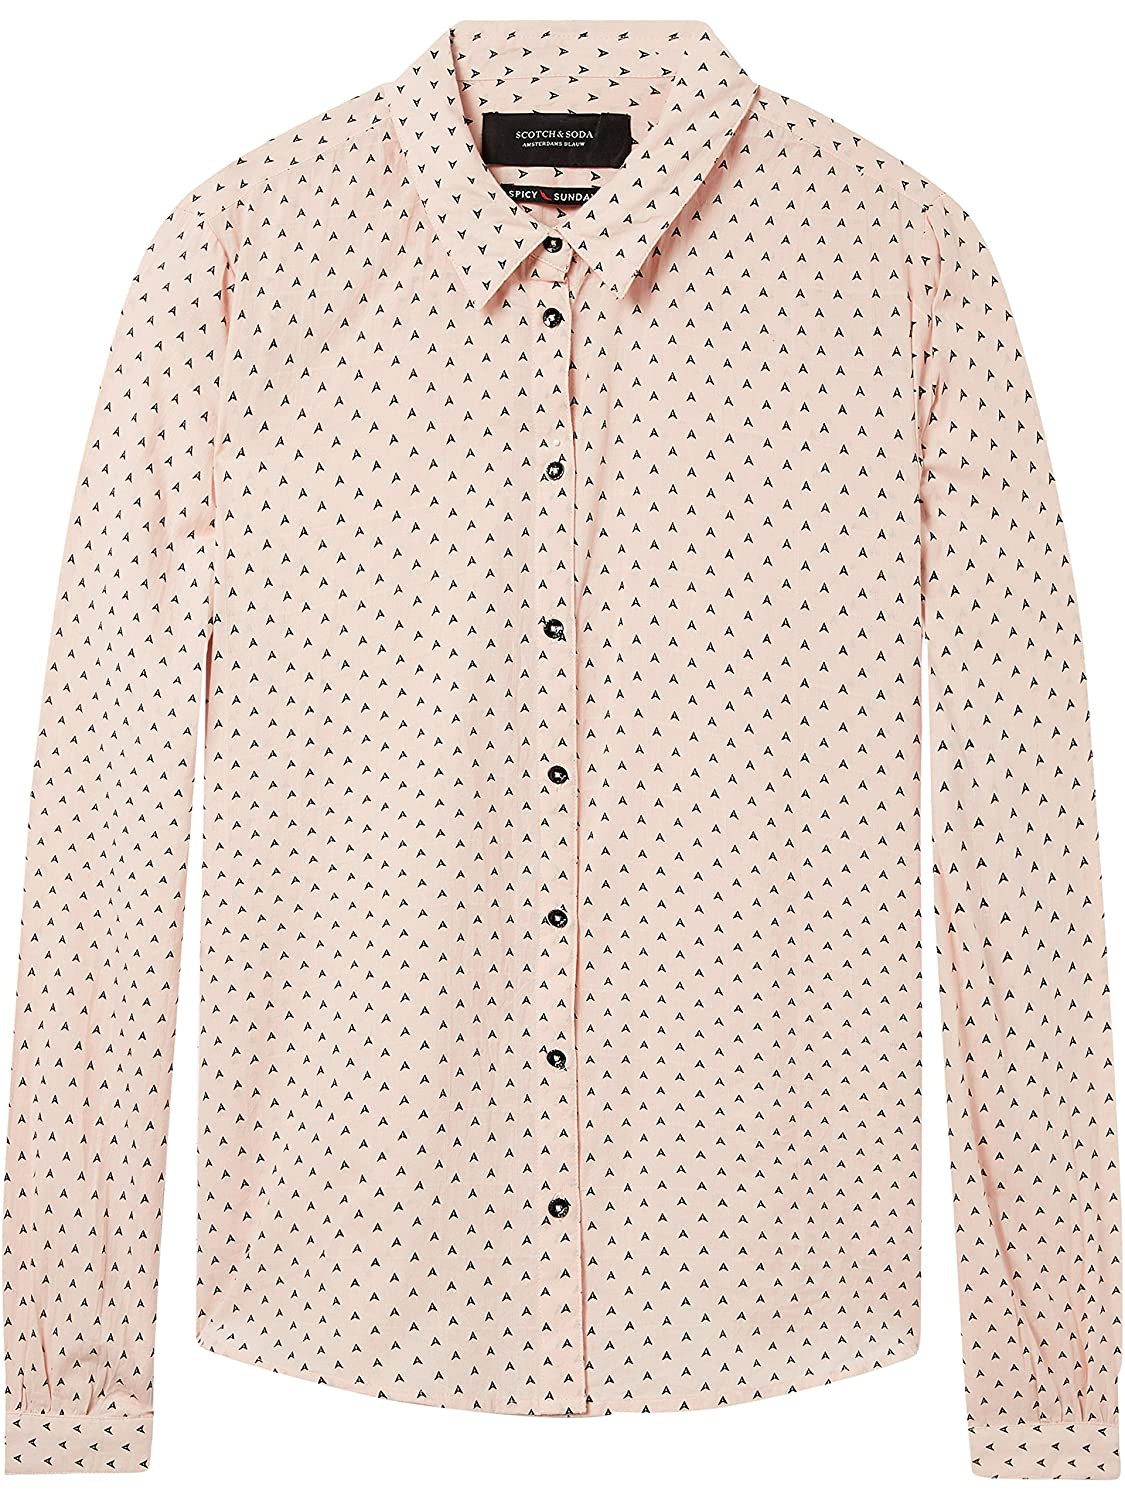 Scotch & Soda Classic Long Sleeve Shirt with Allover Print Blusa para Mujer